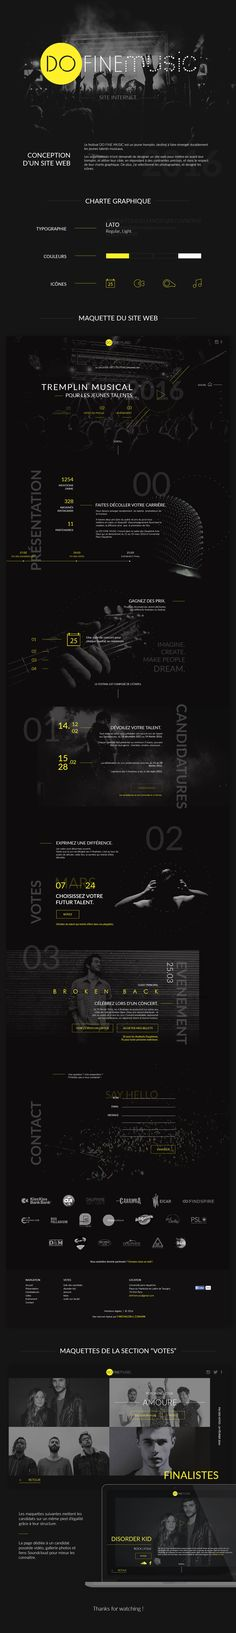 DO FINE MUSIC - Website Festival - By Flora Michalon on Behance